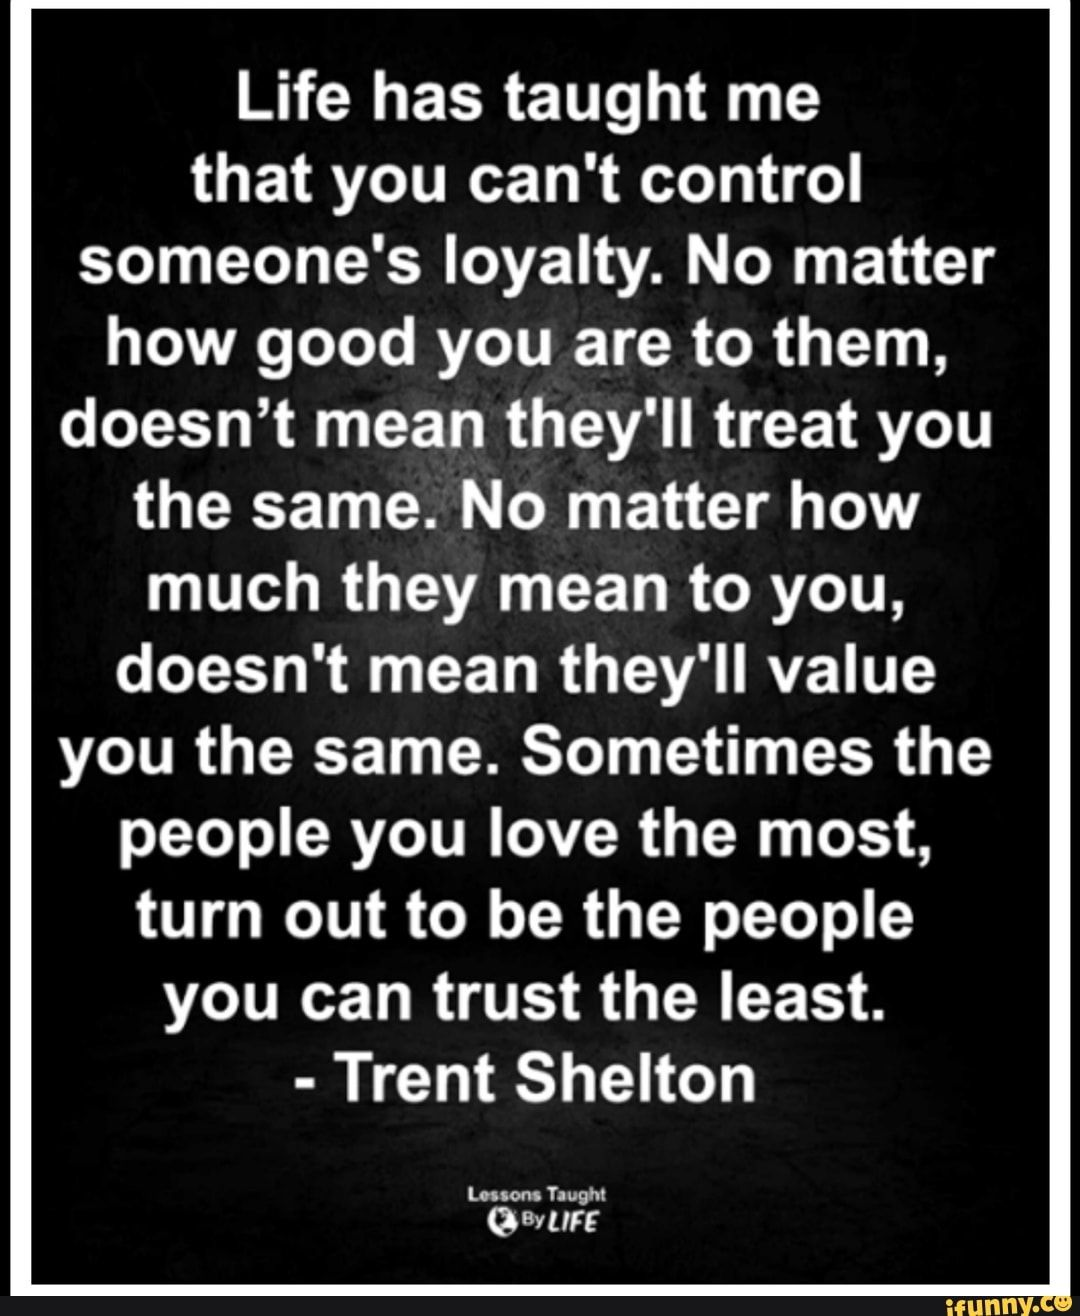 Life Has Taught Me That You Can T Control Someone S Loyalty No Matter How Good You Are To Them Doesn T Mean They Ll Treat You The Same No Matter How Much The Lessons